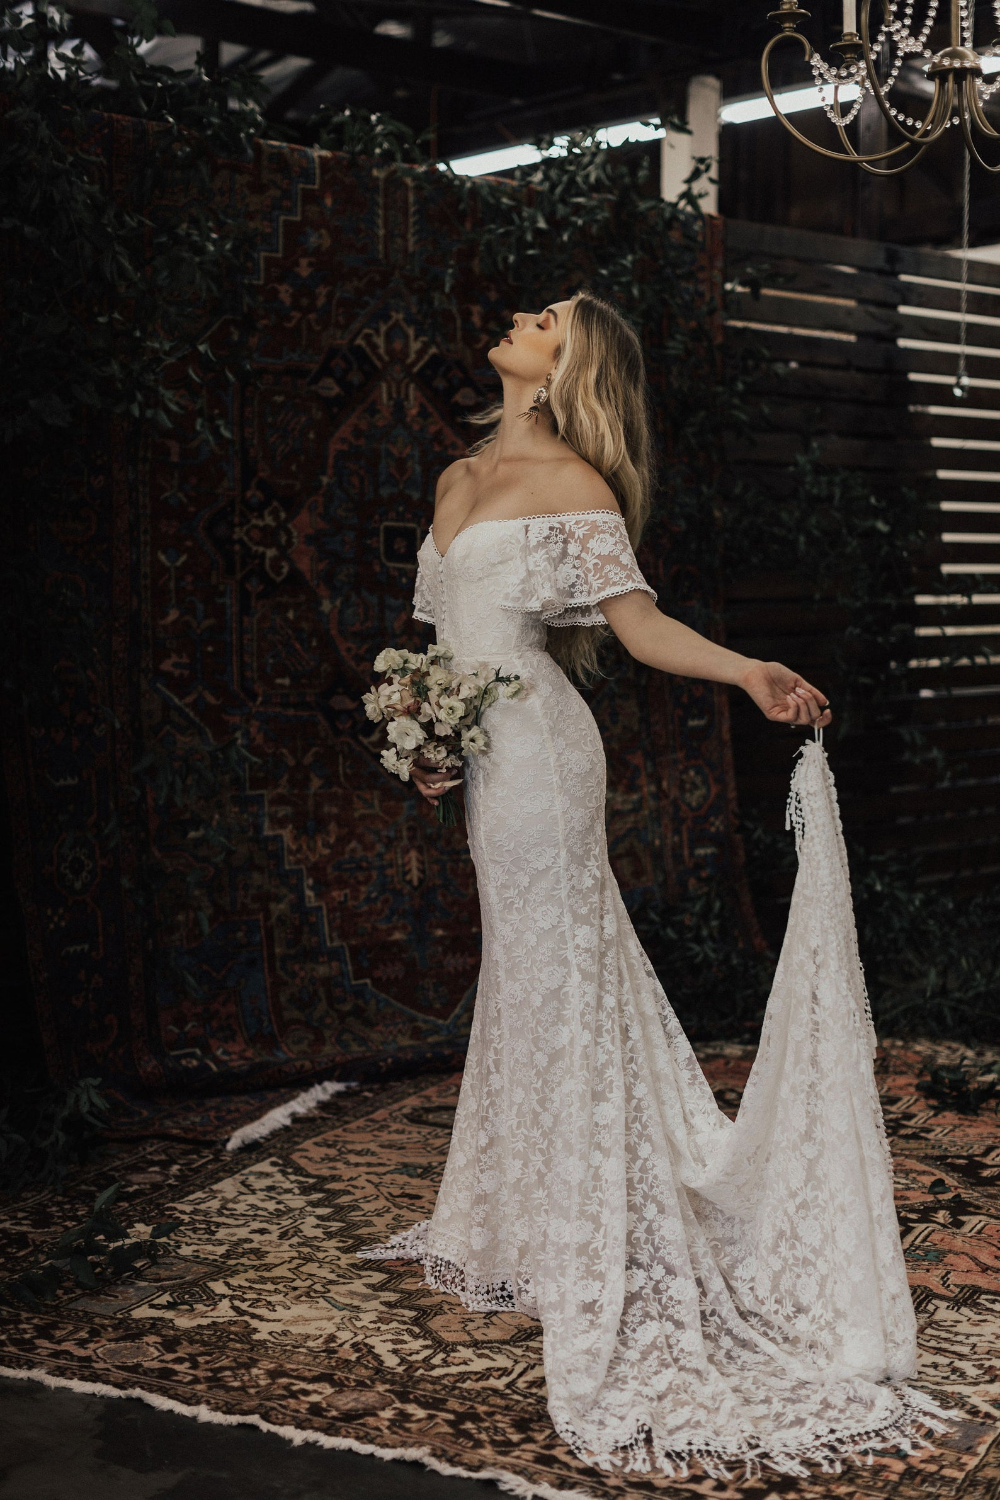 Callista Bohemian Wedding Dress. OFF SHOULDER lace boho wedding gown with FRINGE hem and buttons. Made to Measure in California. size 0-18 12